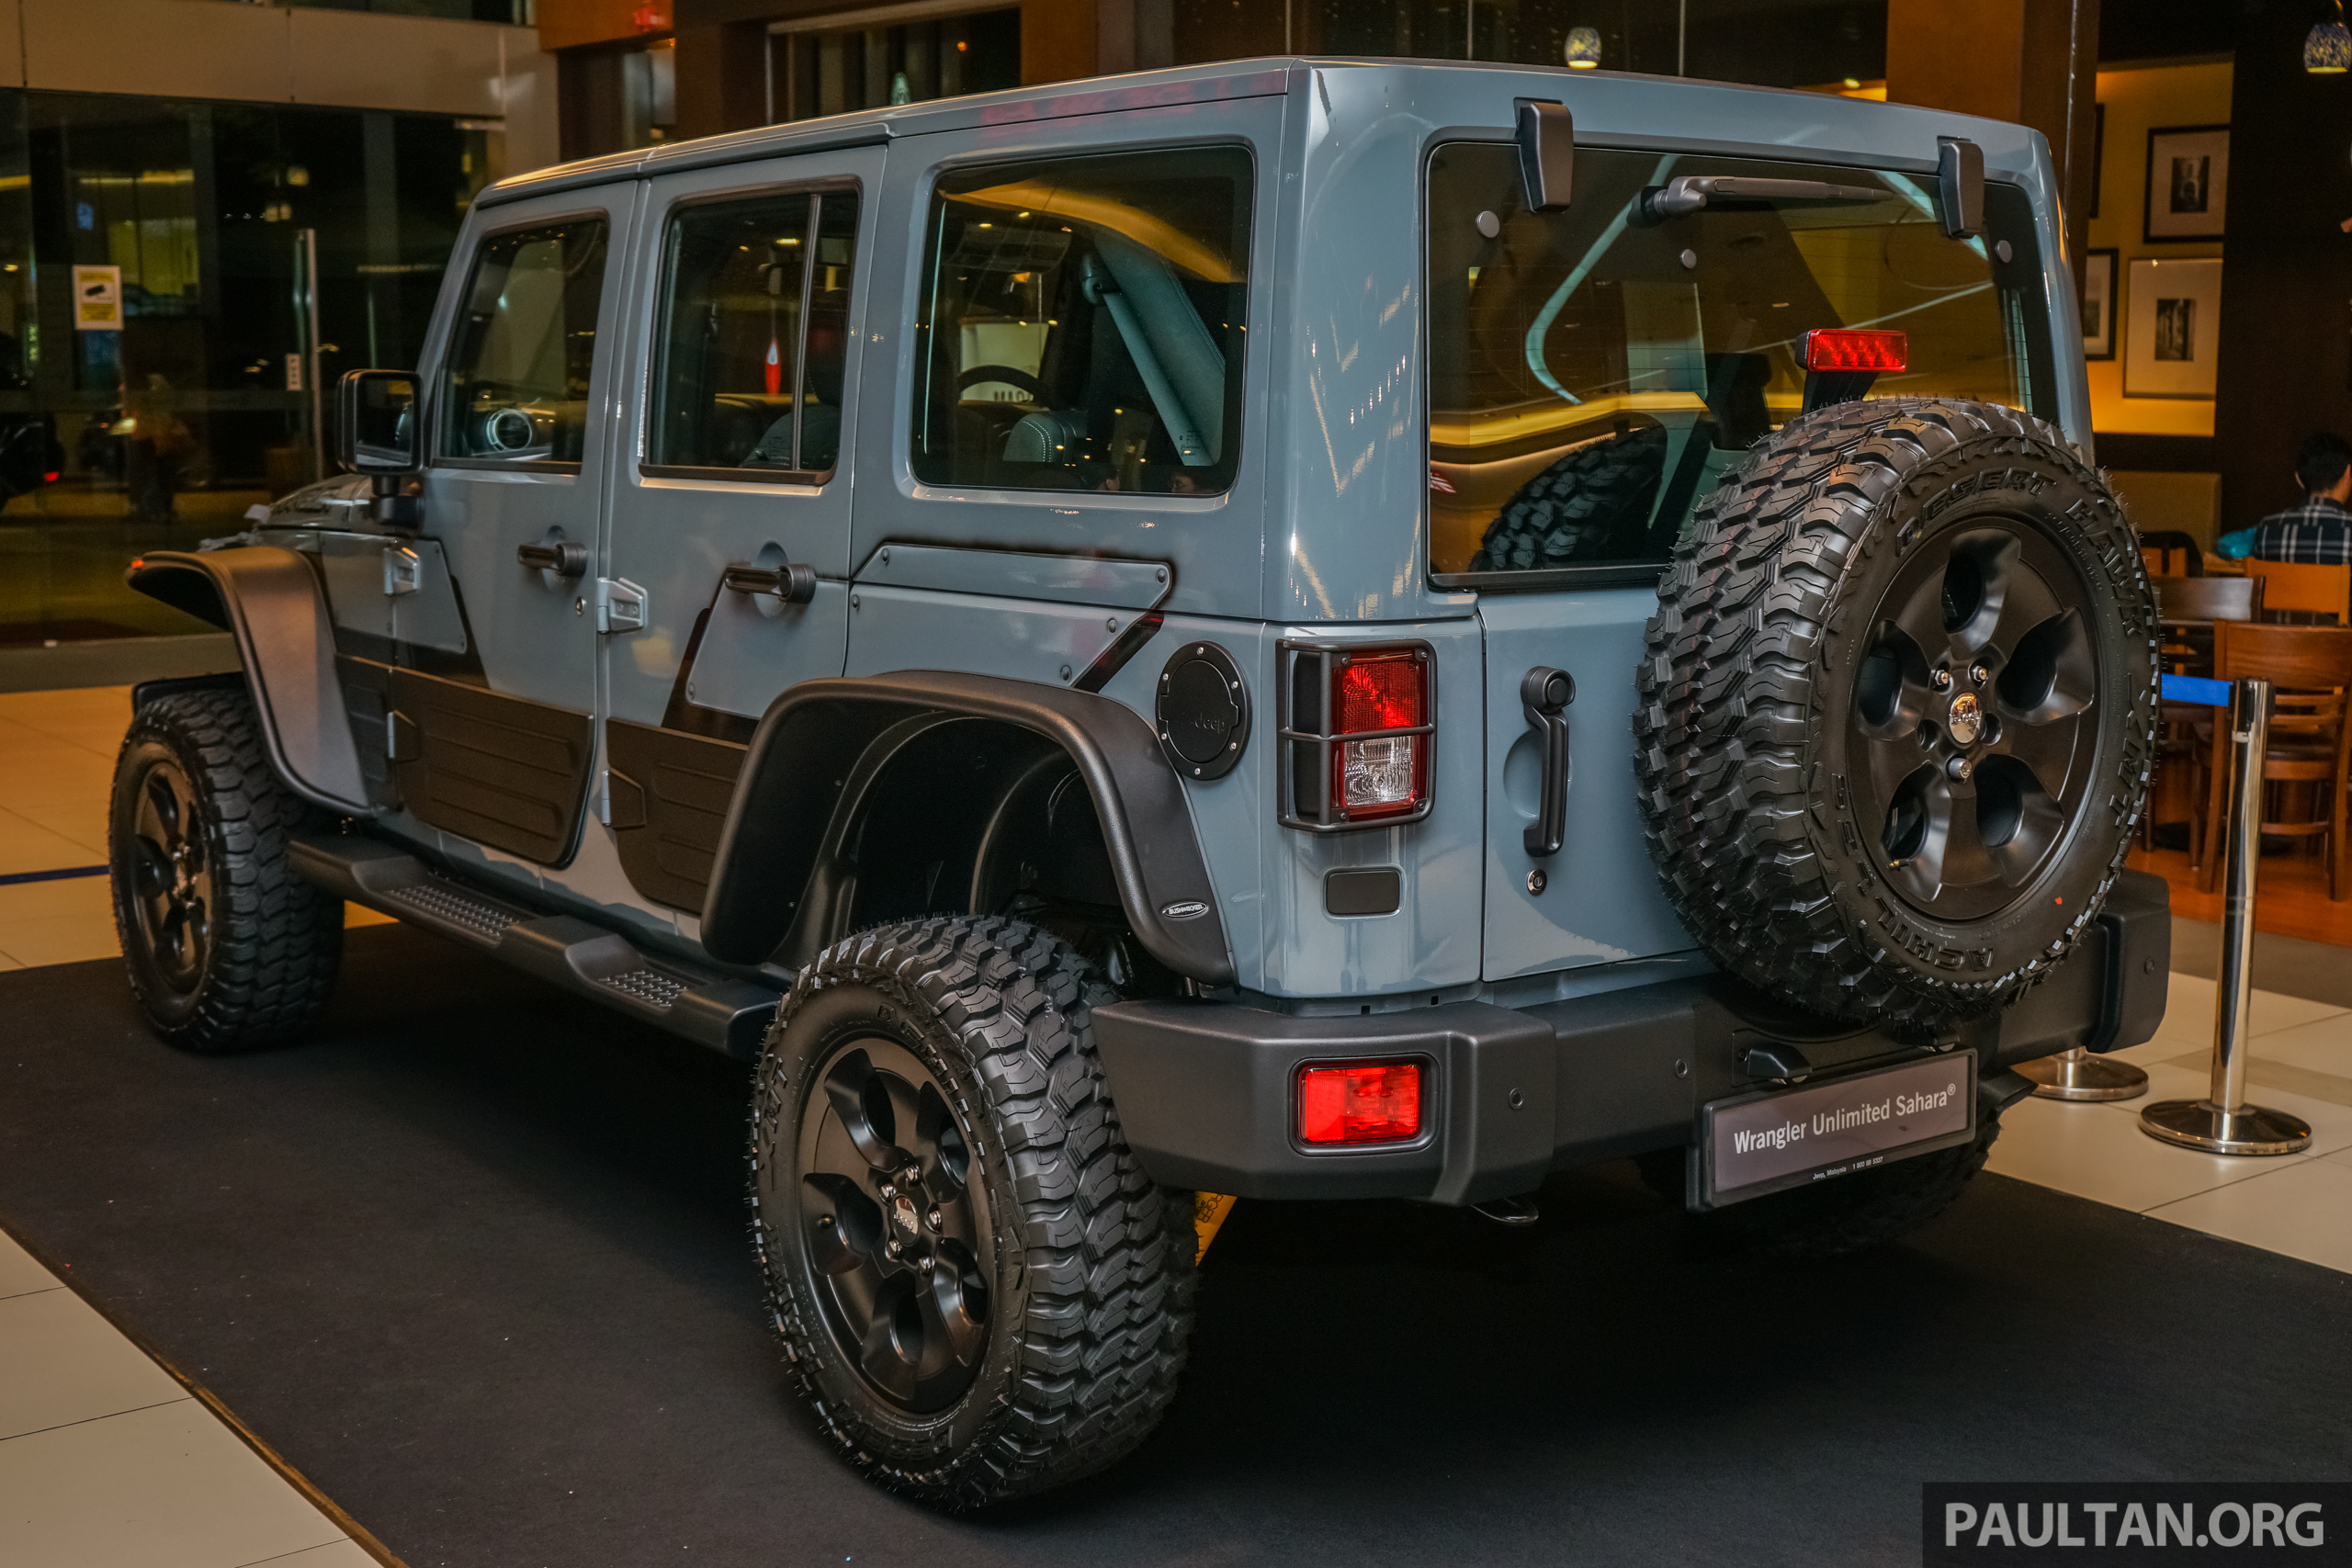 jeep wrangler unlimited sahara batwrangler one off mopar. Cars Review. Best American Auto & Cars Review